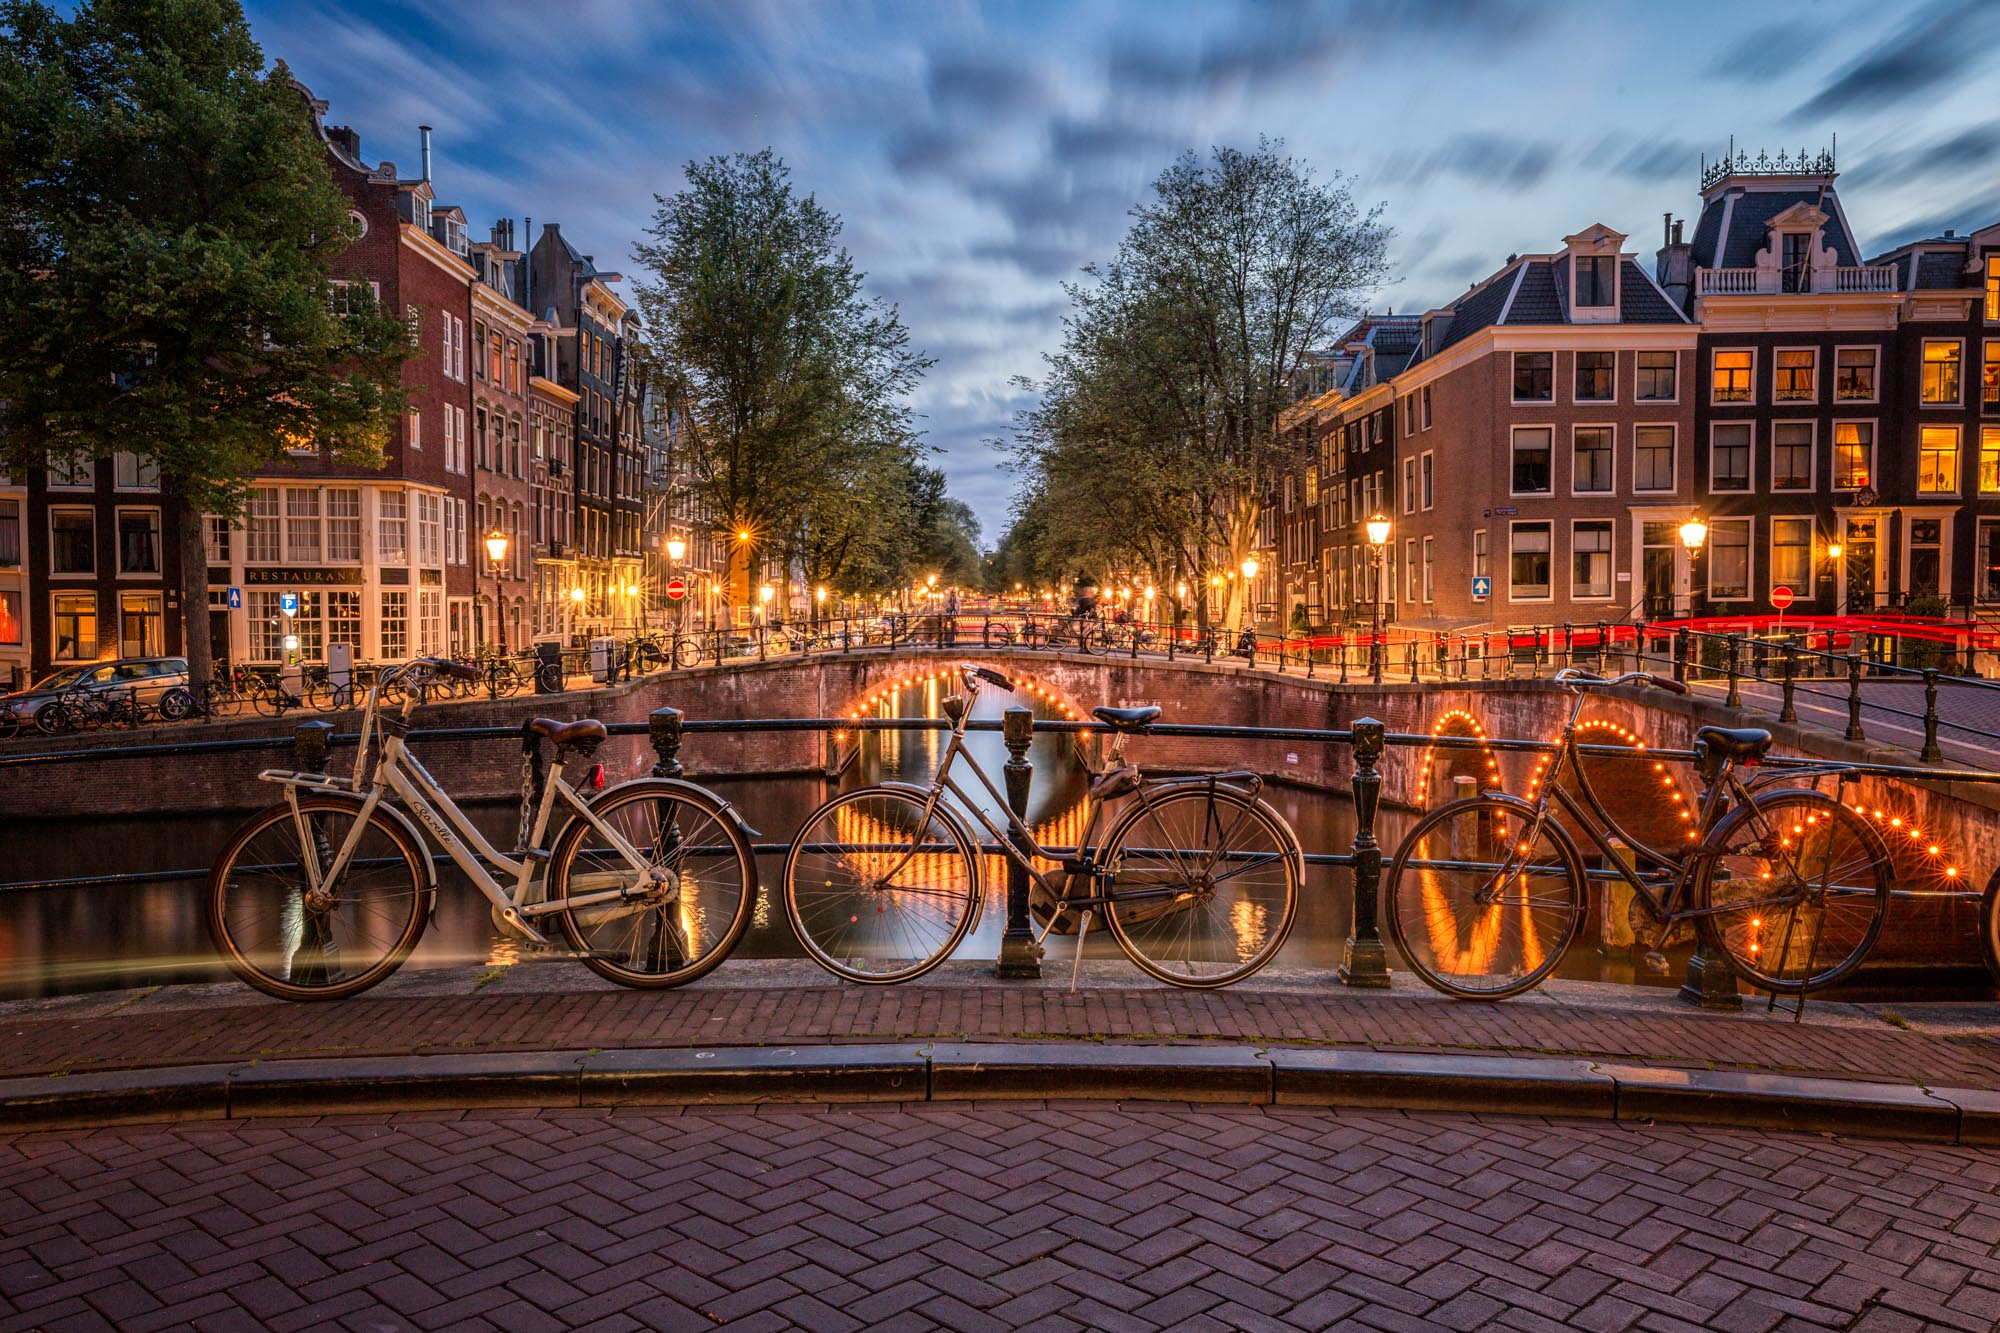 long exposure photography of the bicycles beside a canal in Amsterdam at night in The Netherlands